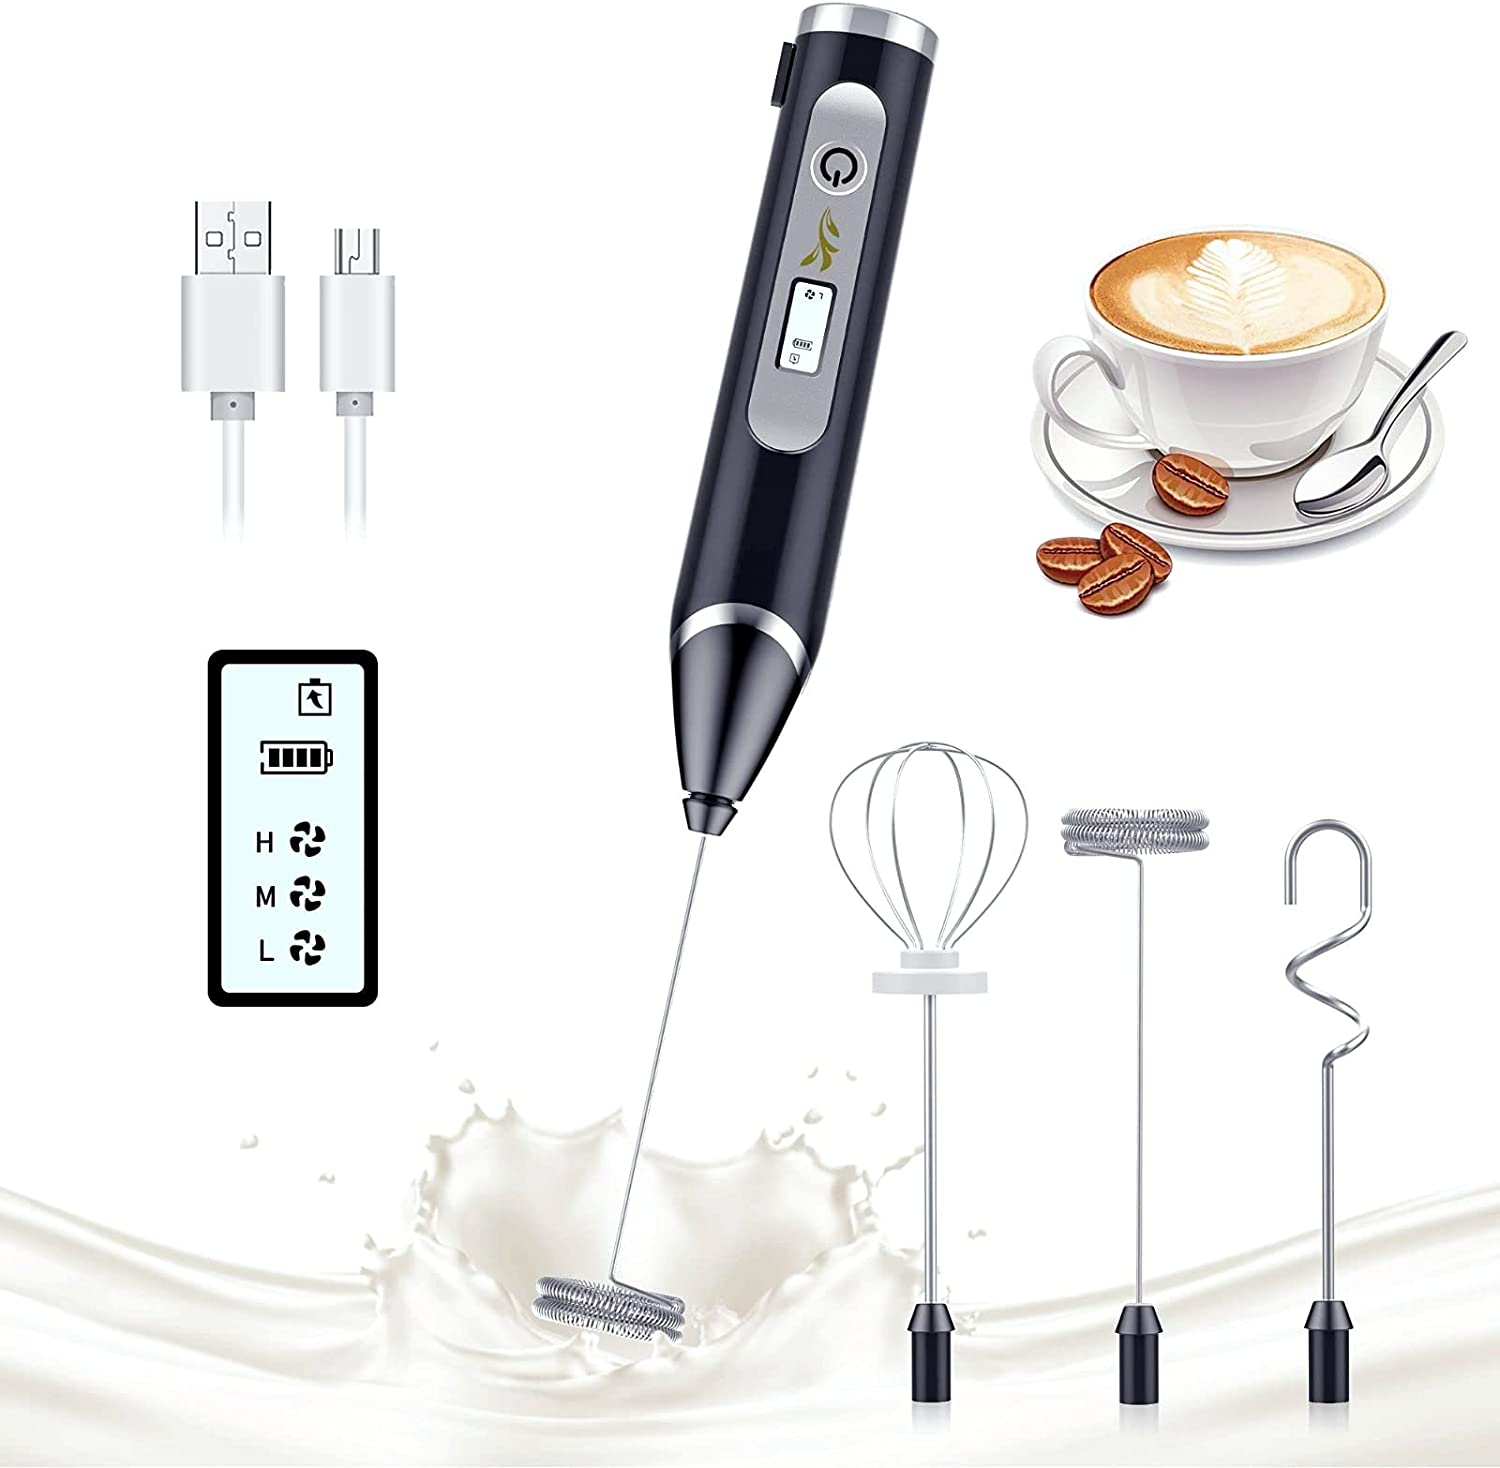 Milk Frother LCD Electric Handheld USB Rechargeable Adjustable 3 Speeds Hand Frother Whisk Mini Blender Drink Mixer for Latte, Bulletproof Coffee, Cappuccino, Hot Chocolate, Frappe, Egg Whisks